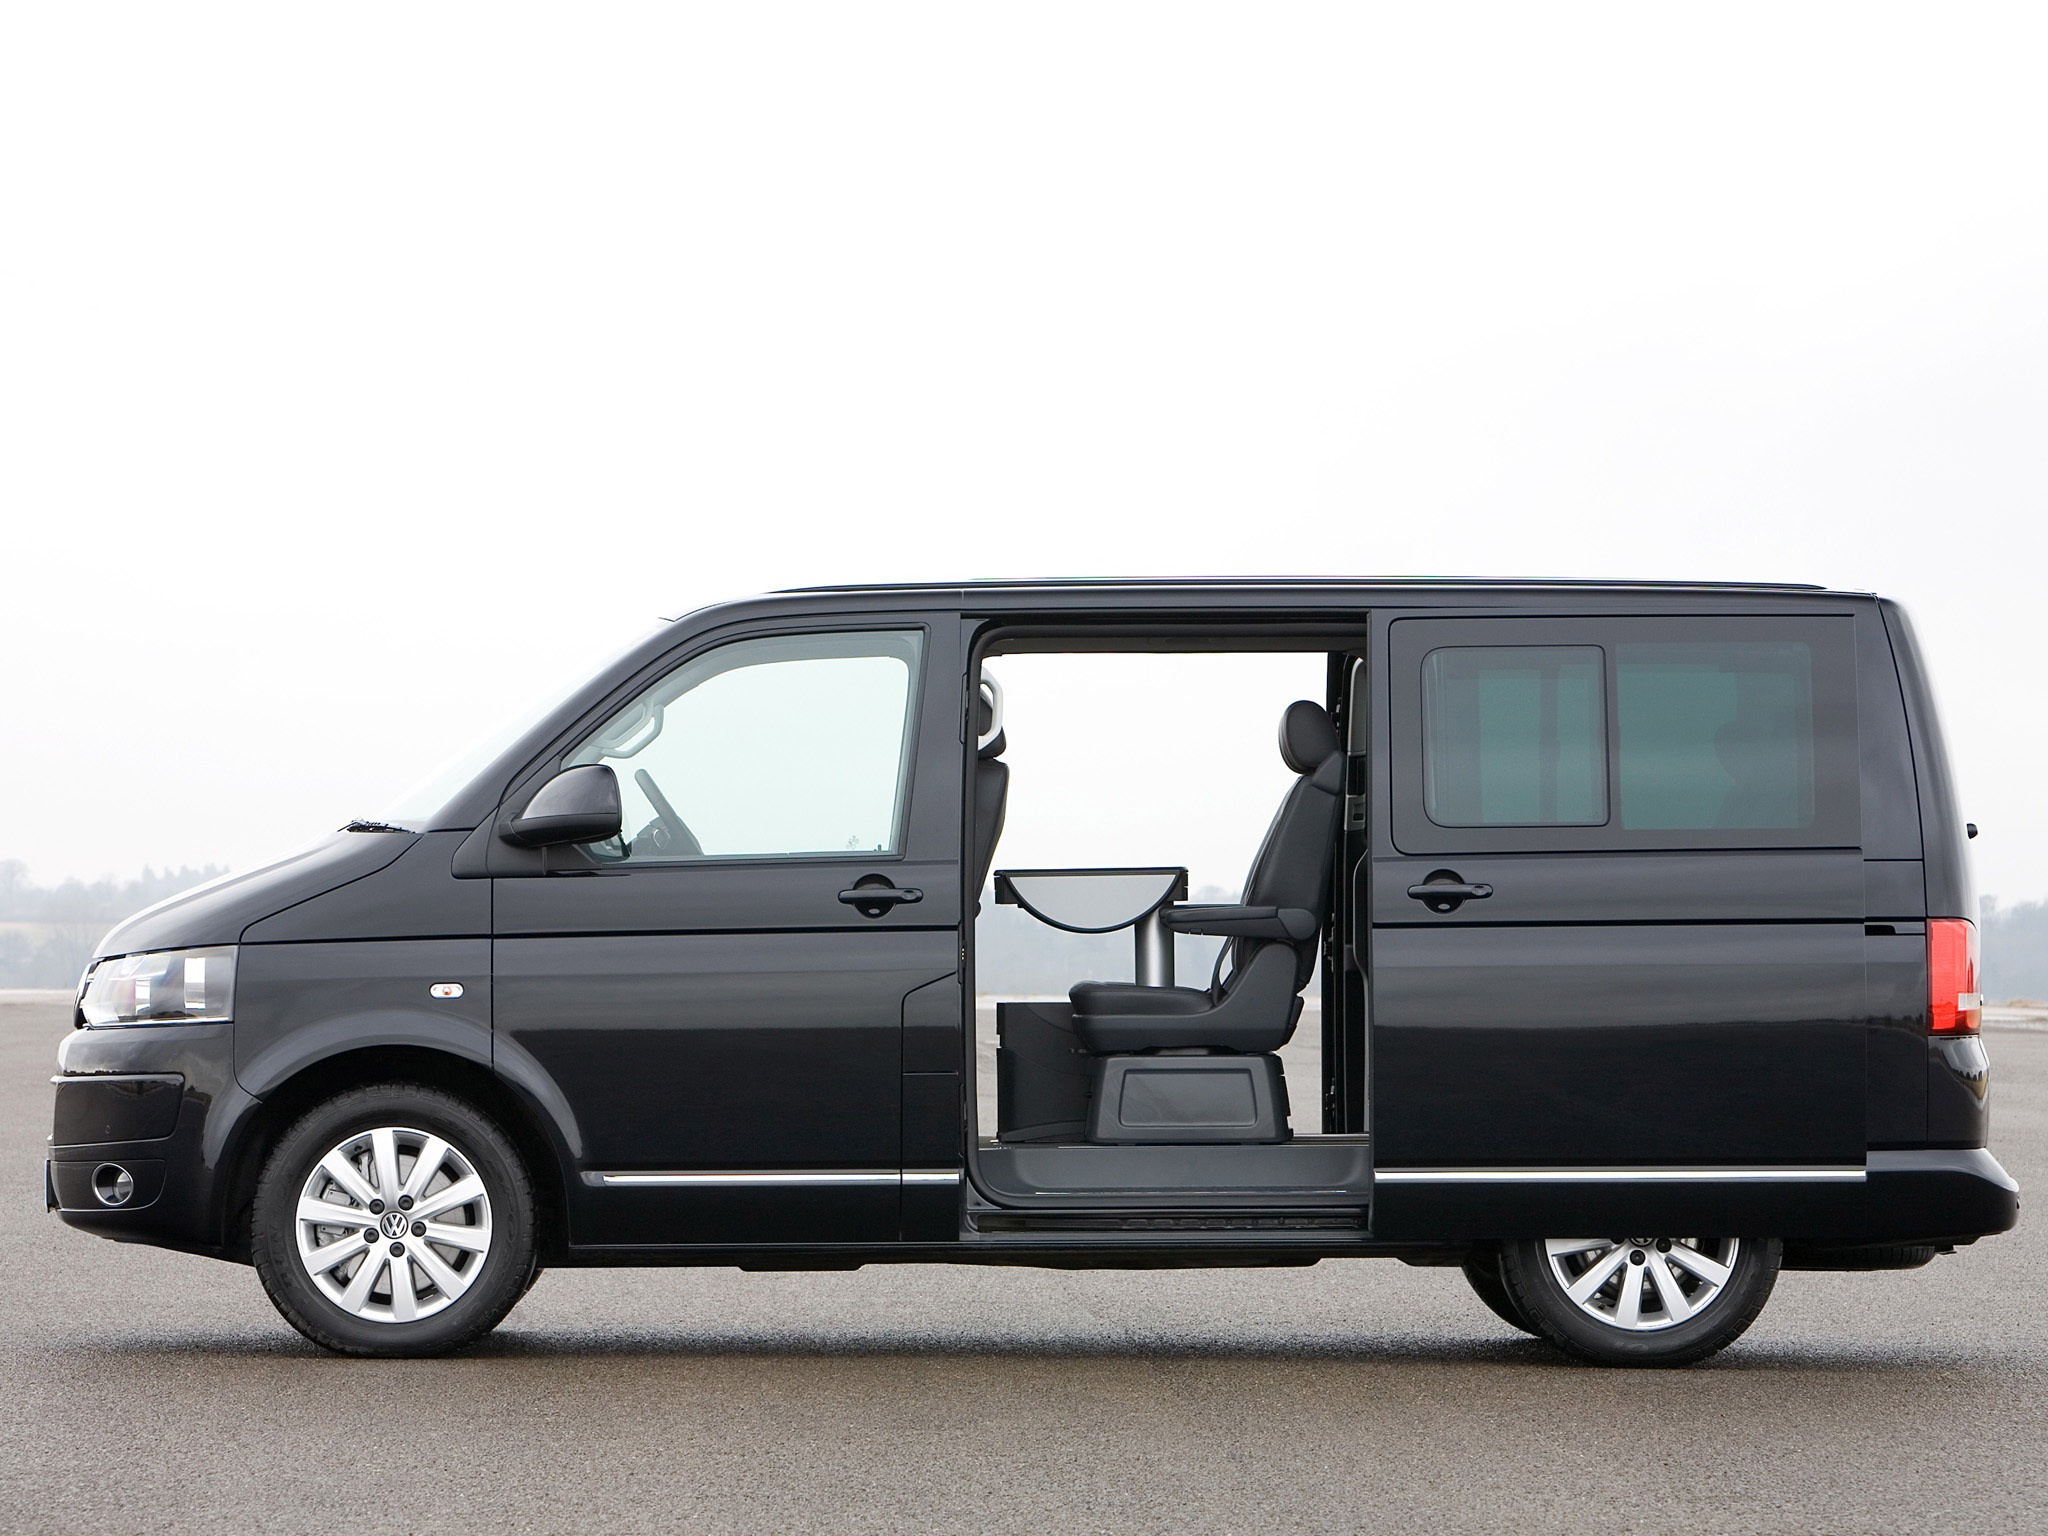 volkswagen t5 caravelle uk 2009 volkswagen t5 caravelle uk 2009 photo 03 car in pictures car. Black Bedroom Furniture Sets. Home Design Ideas